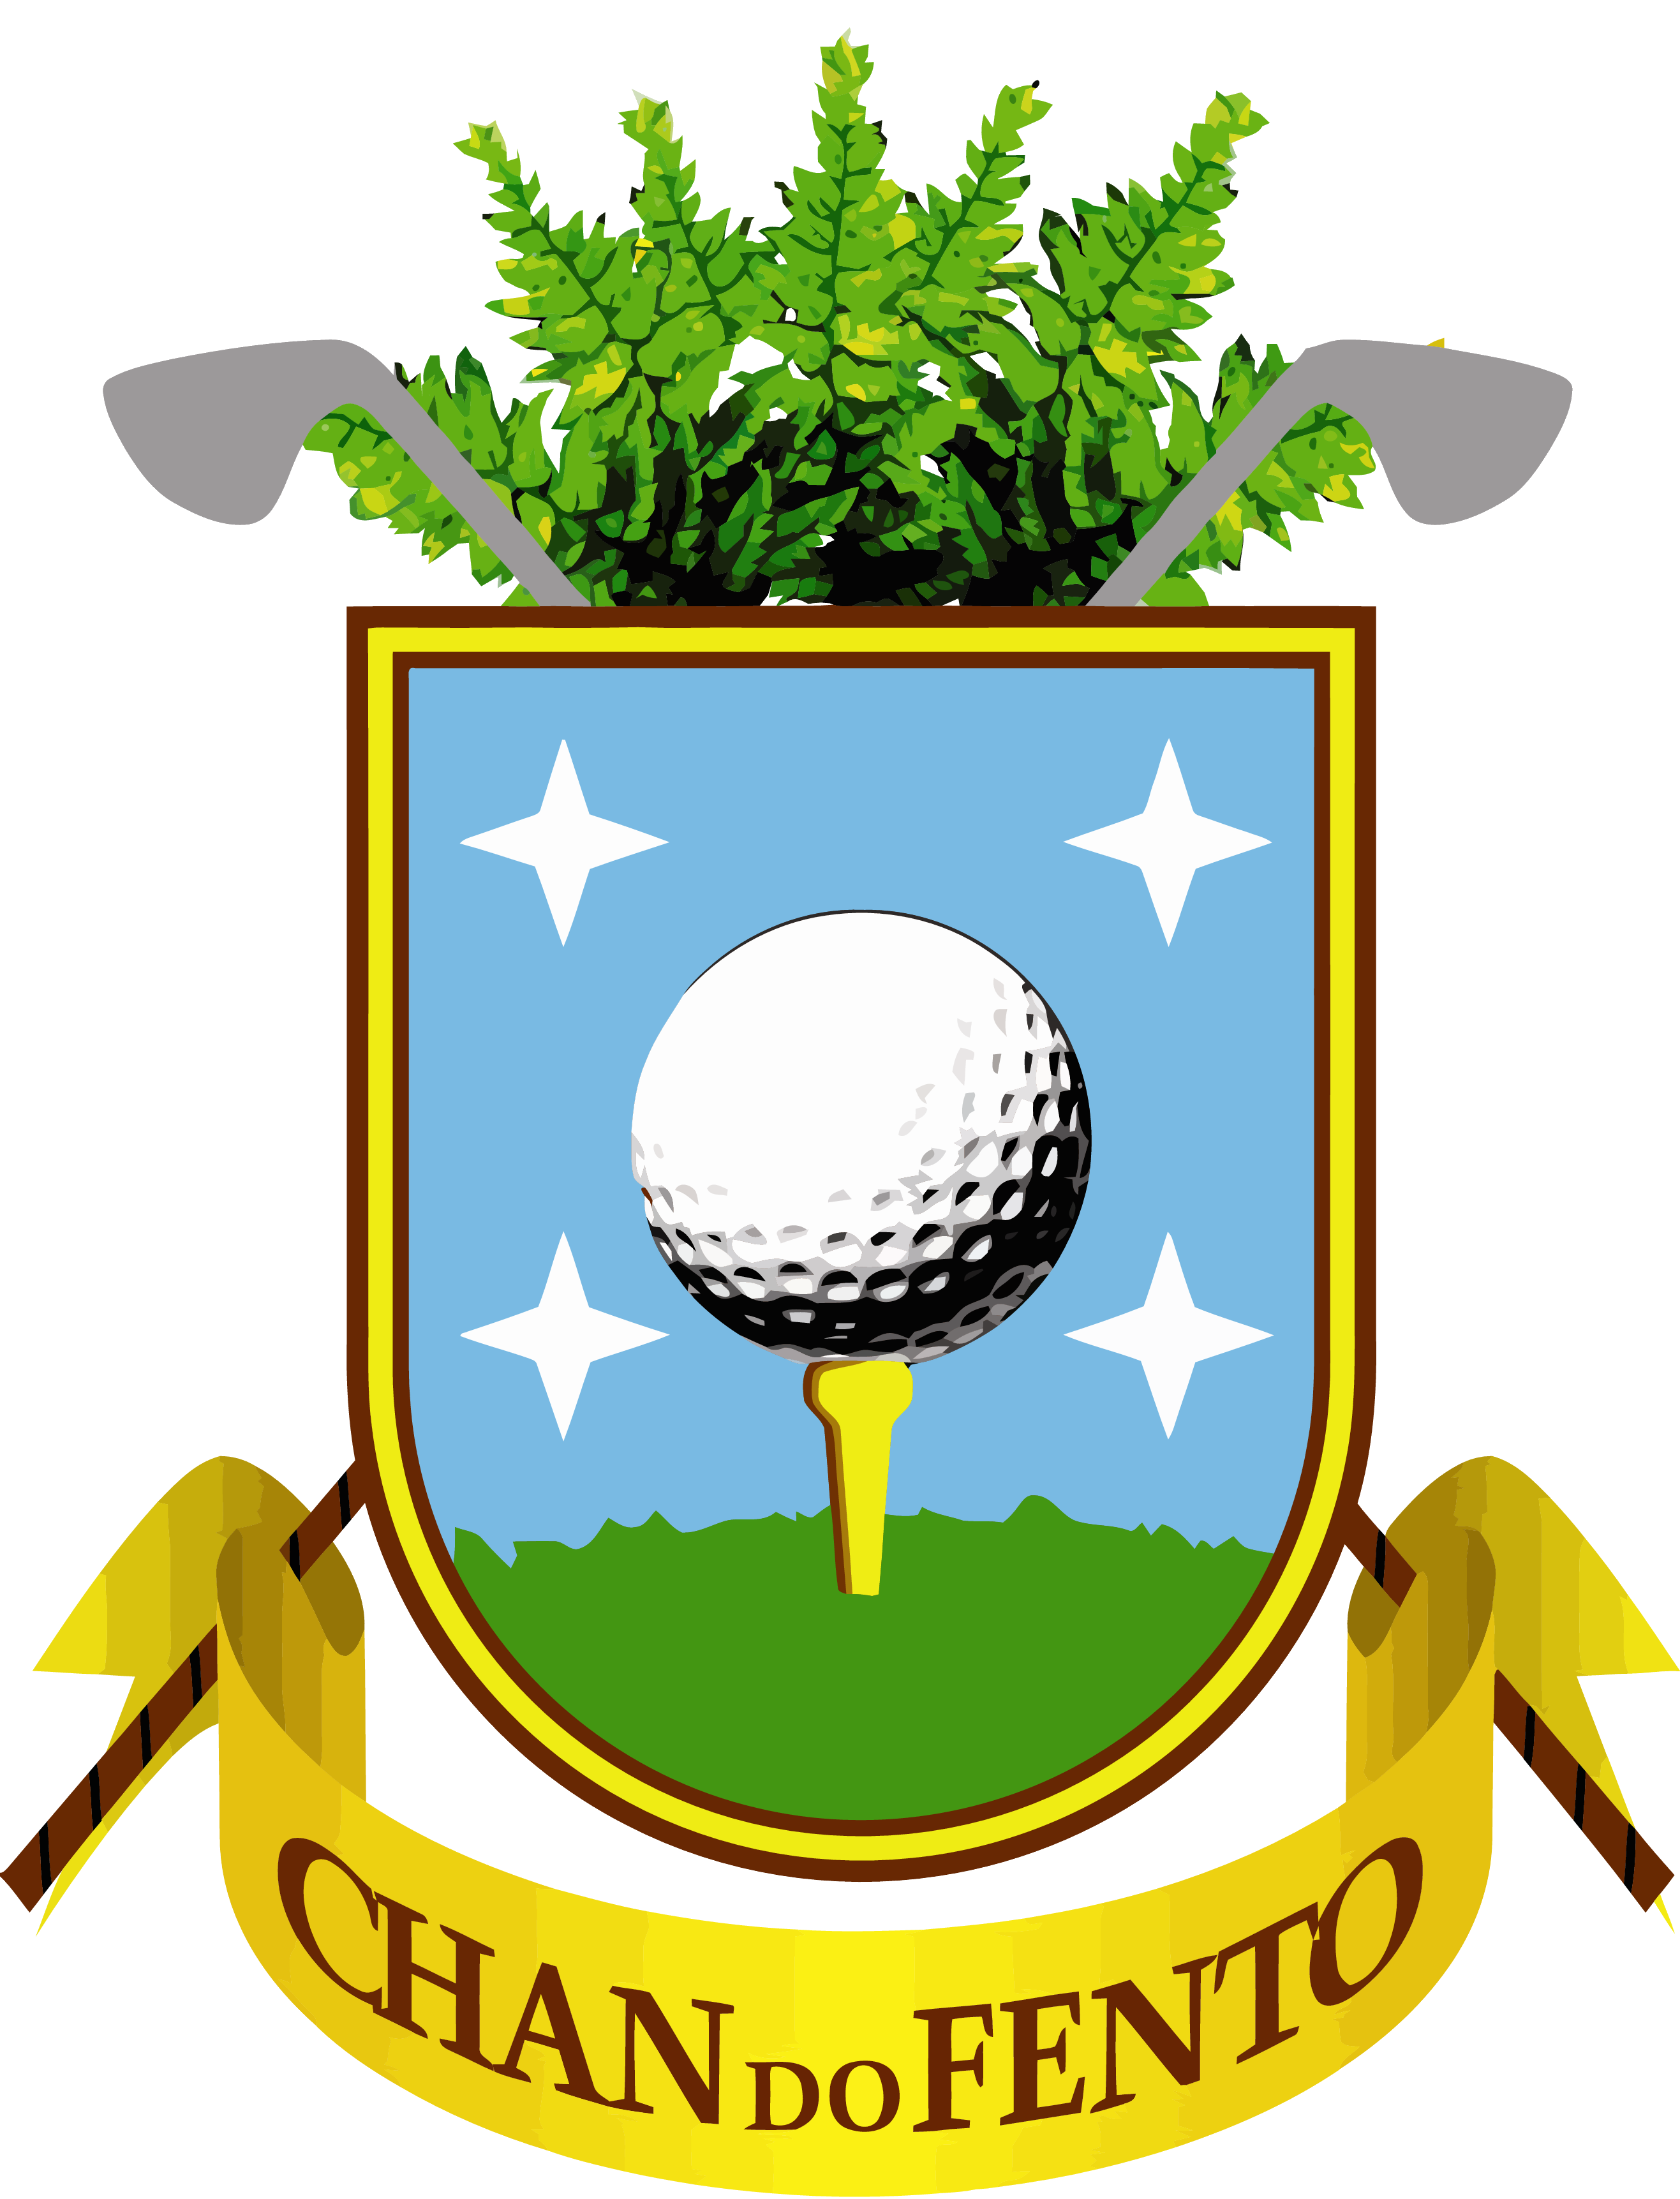 Chan Do Fento Golf Club